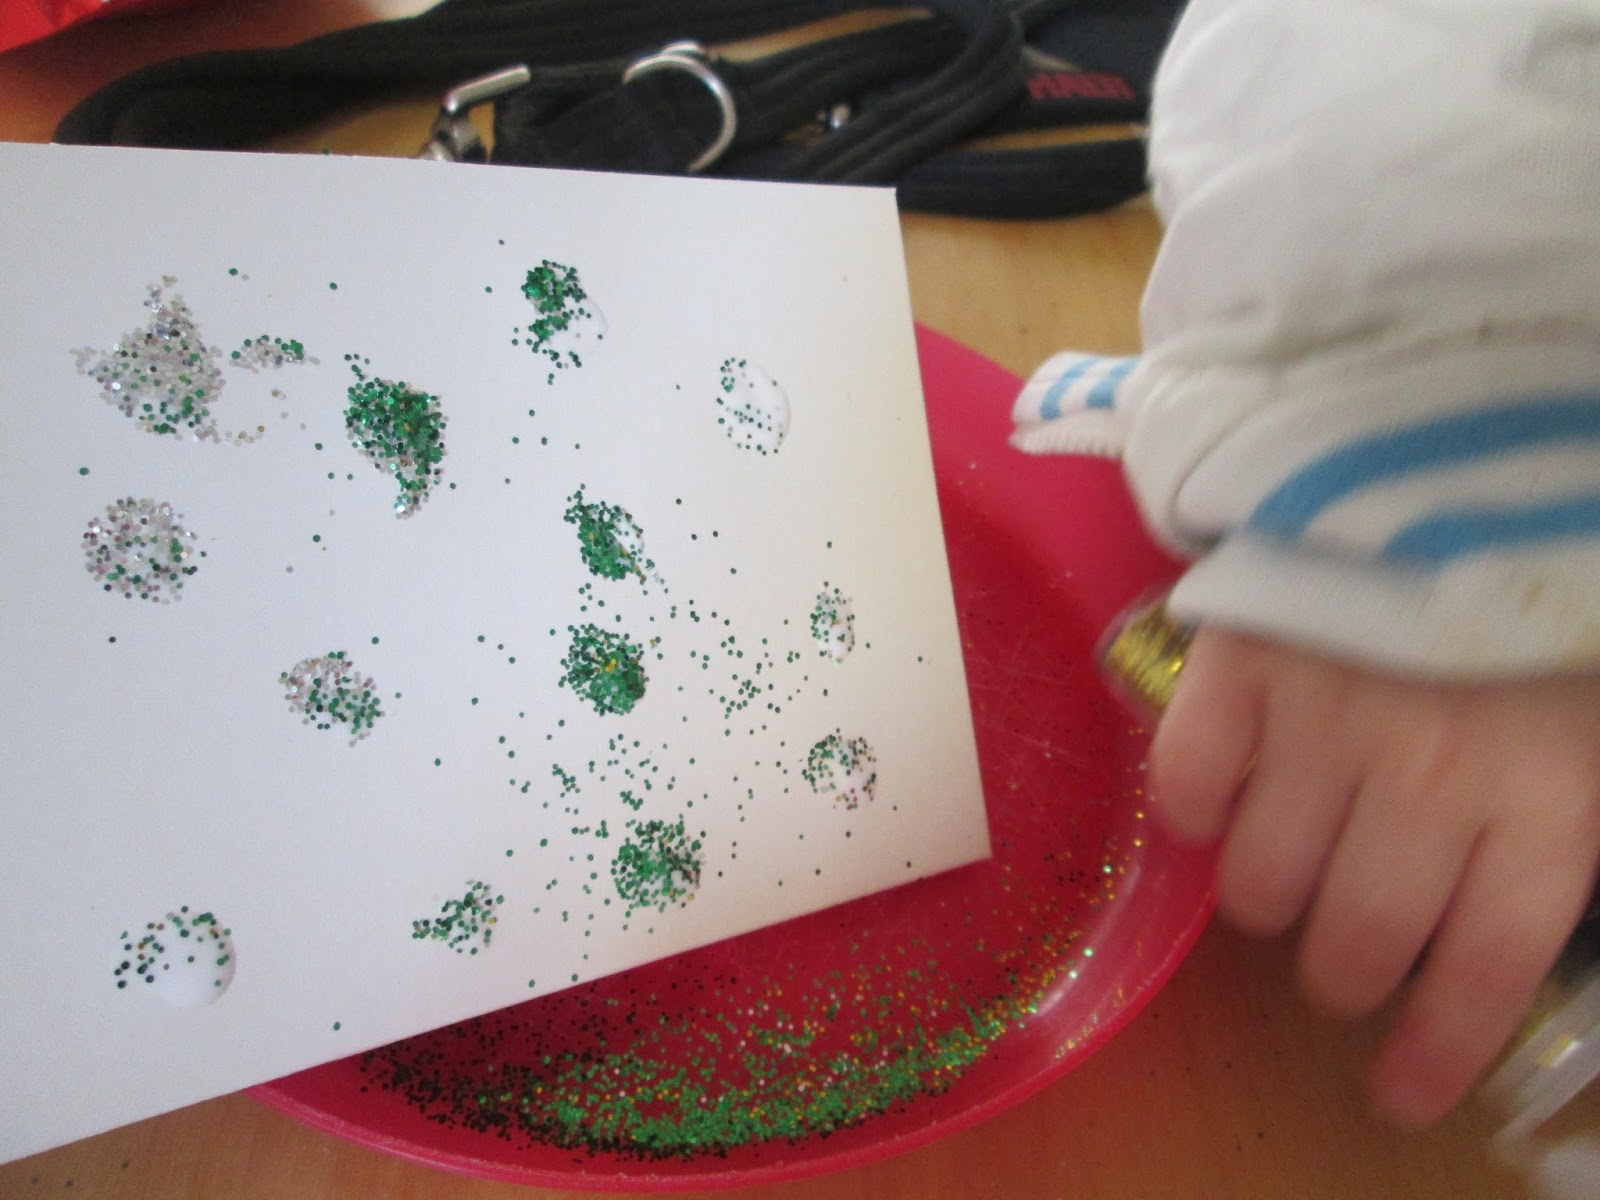 Alexander's card and trying to catch the glitter